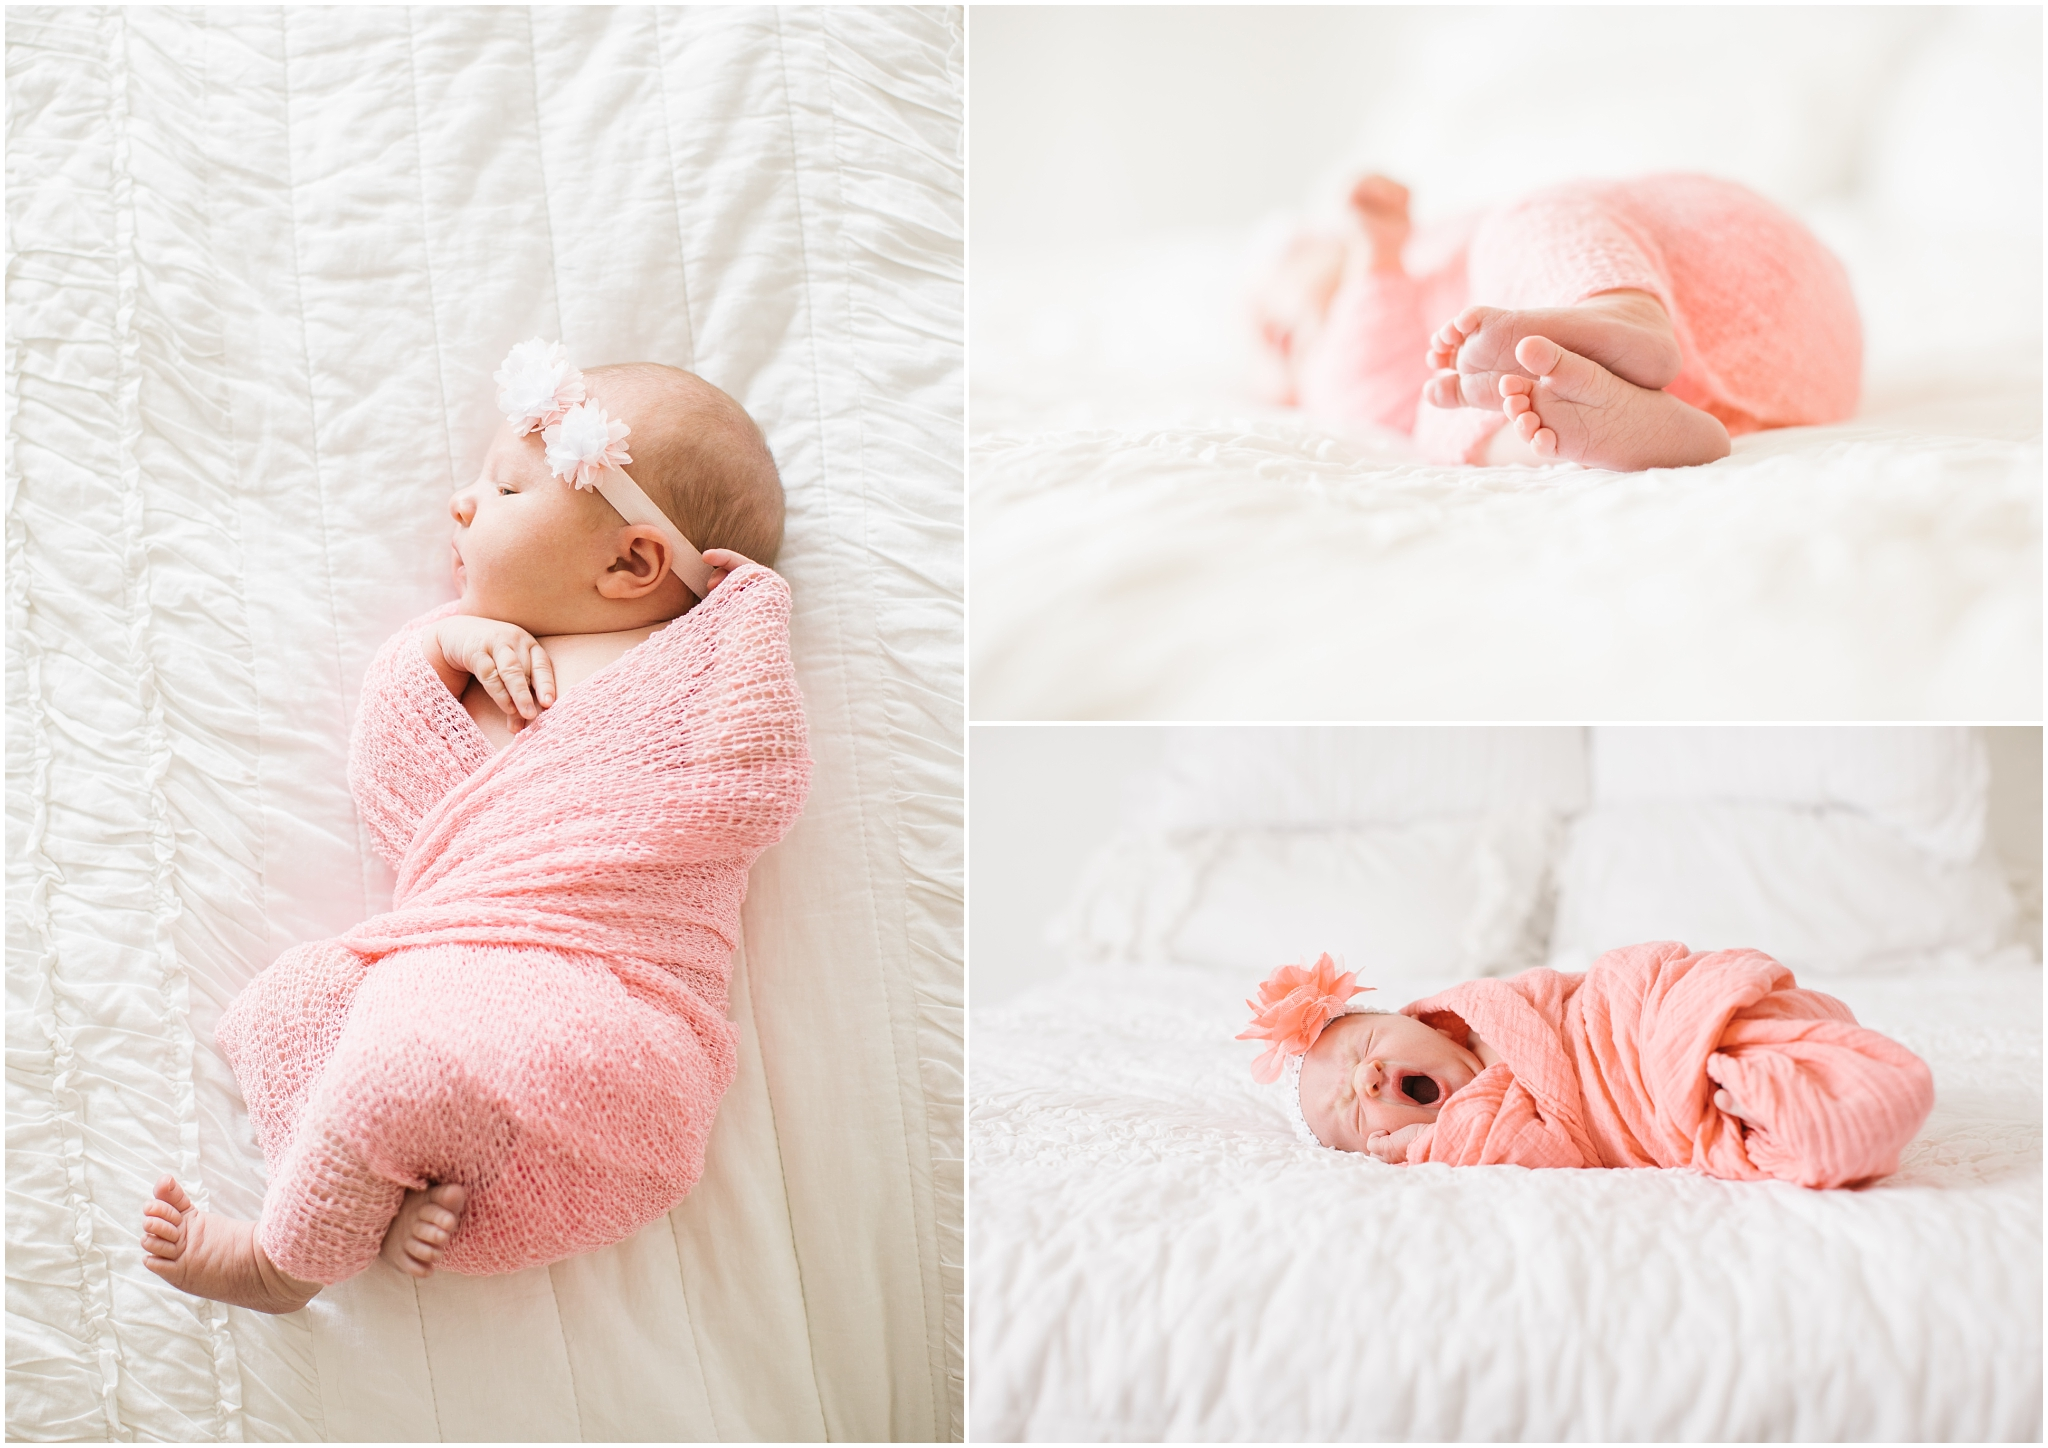 Autumn-54_Lizzie-B-Imagery-Utah-Family-Photographer-Central-Utah-Photographer-Utah-County-Newborn.jpg